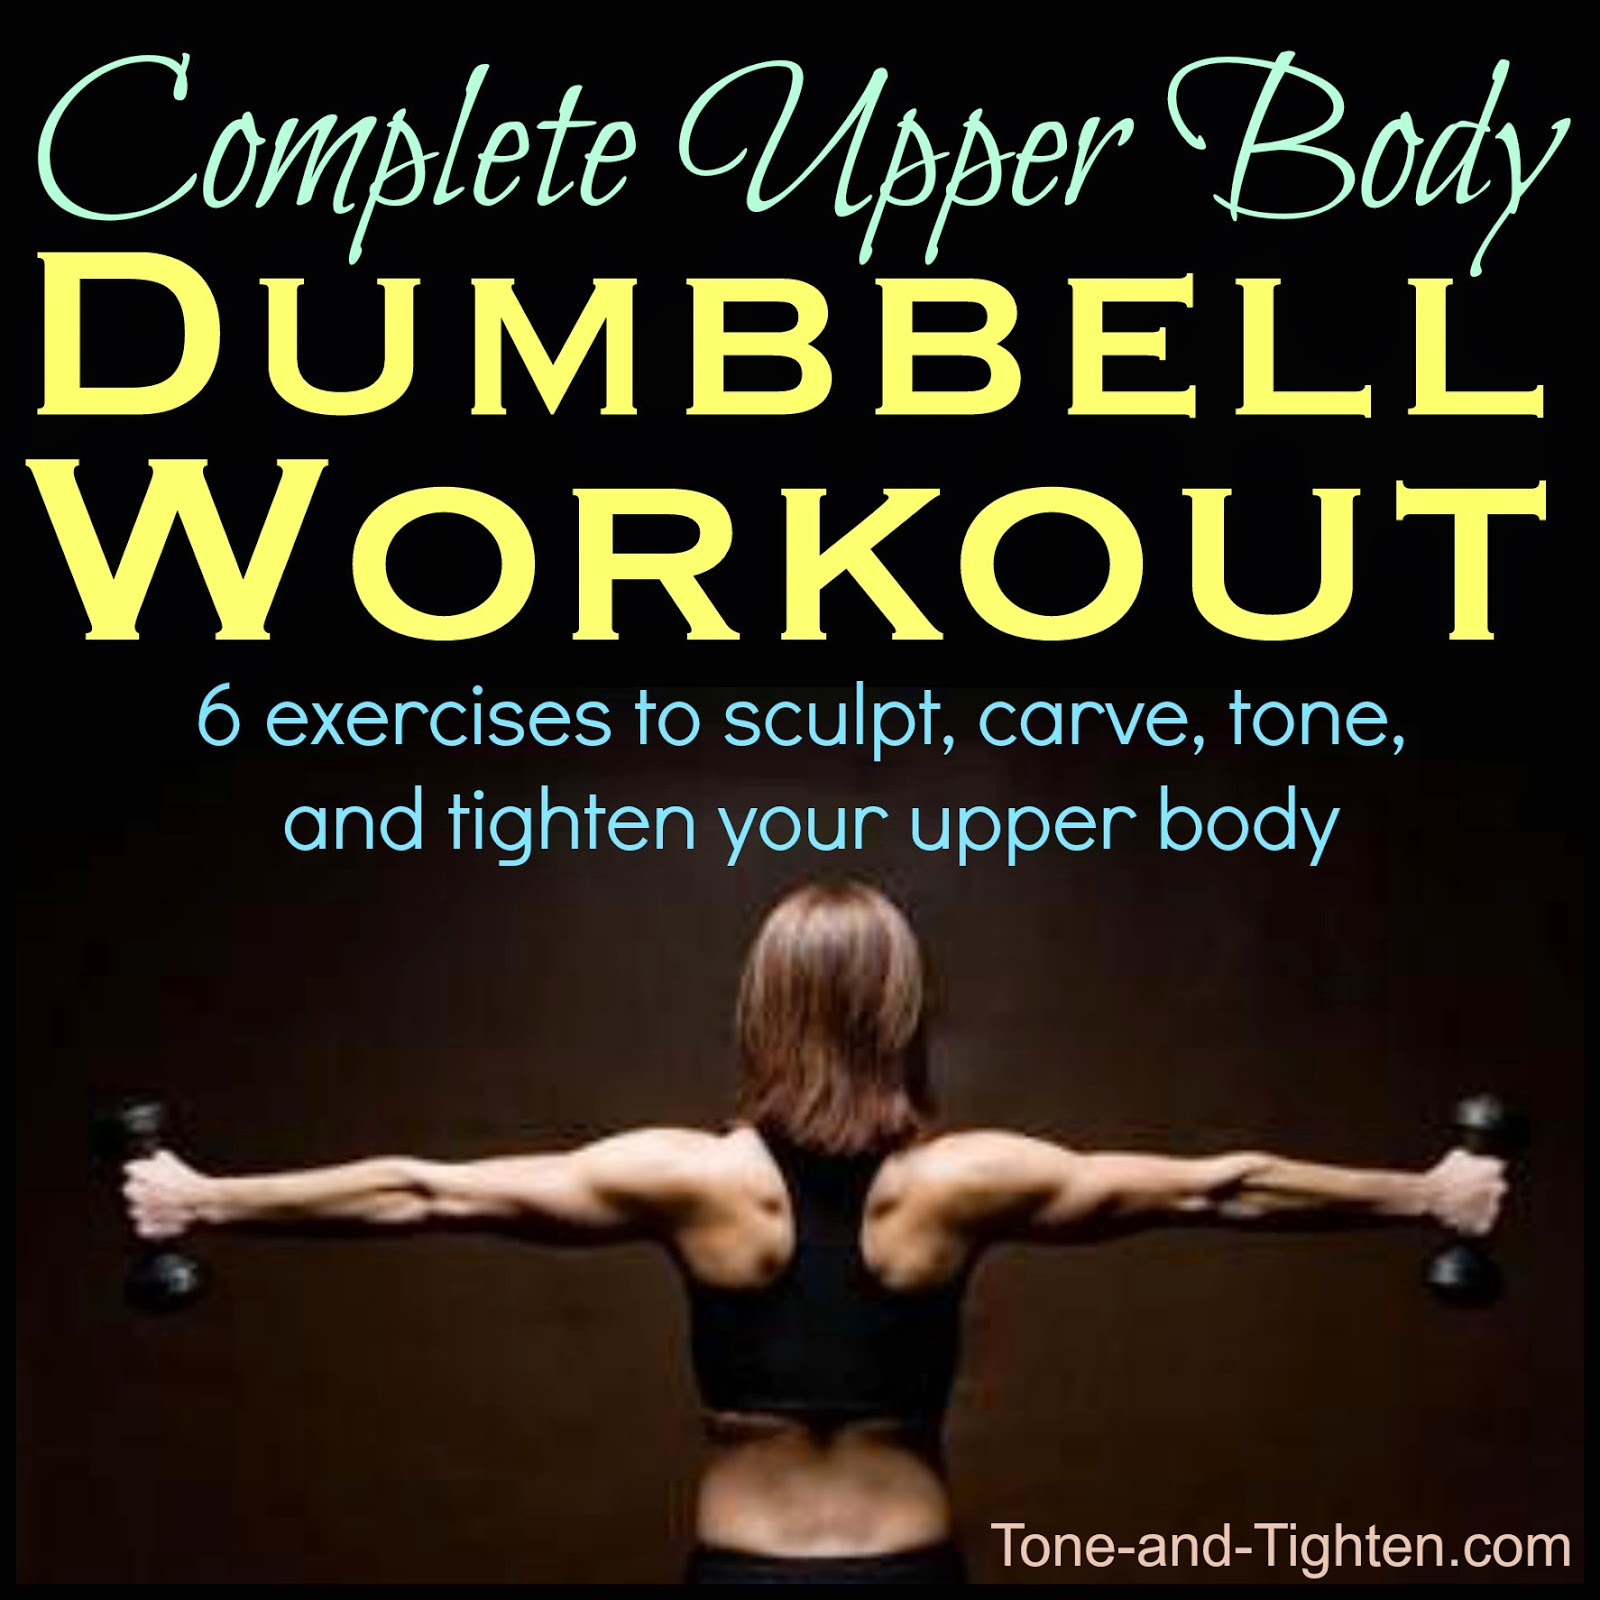 Free Weights Total Body Workout: Total Body Gym Circuit Workout